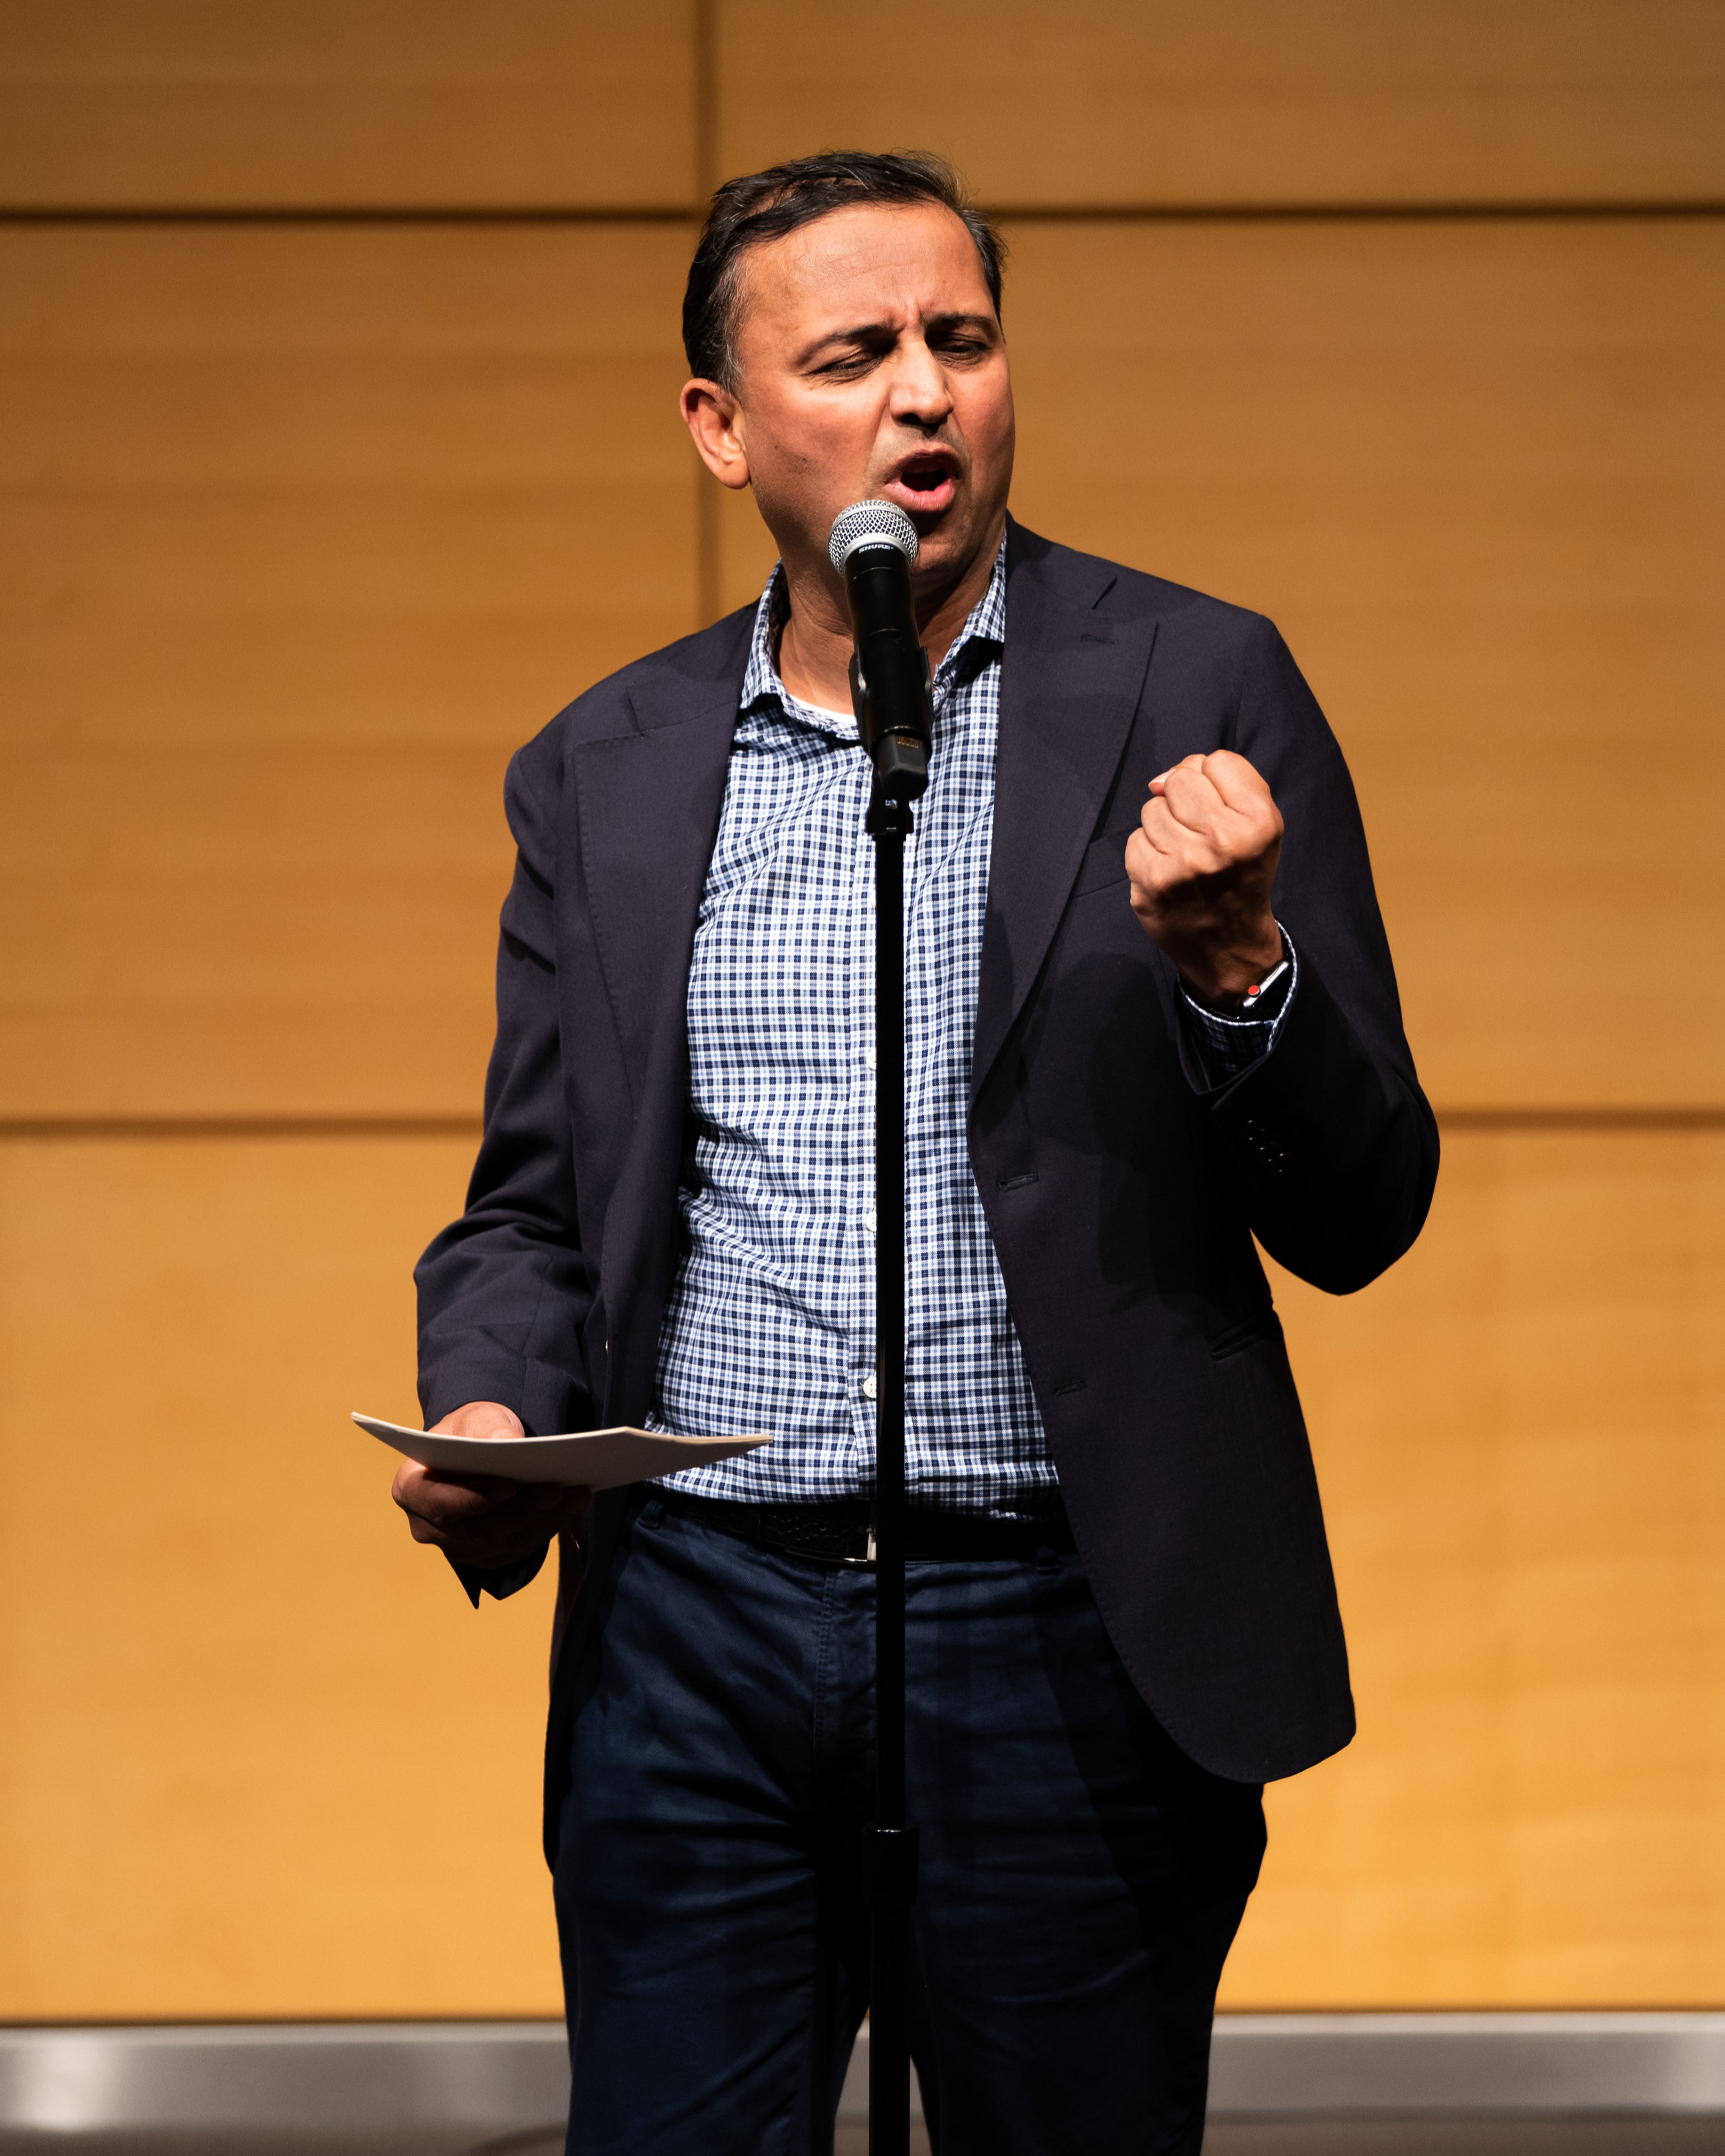 Bhuvanesh Singh shares his story with the Story Collider audience at the Mortimer B. Zuckerman Research Center auditorium in New York City in December 2018. Photo by Zhen Qin.